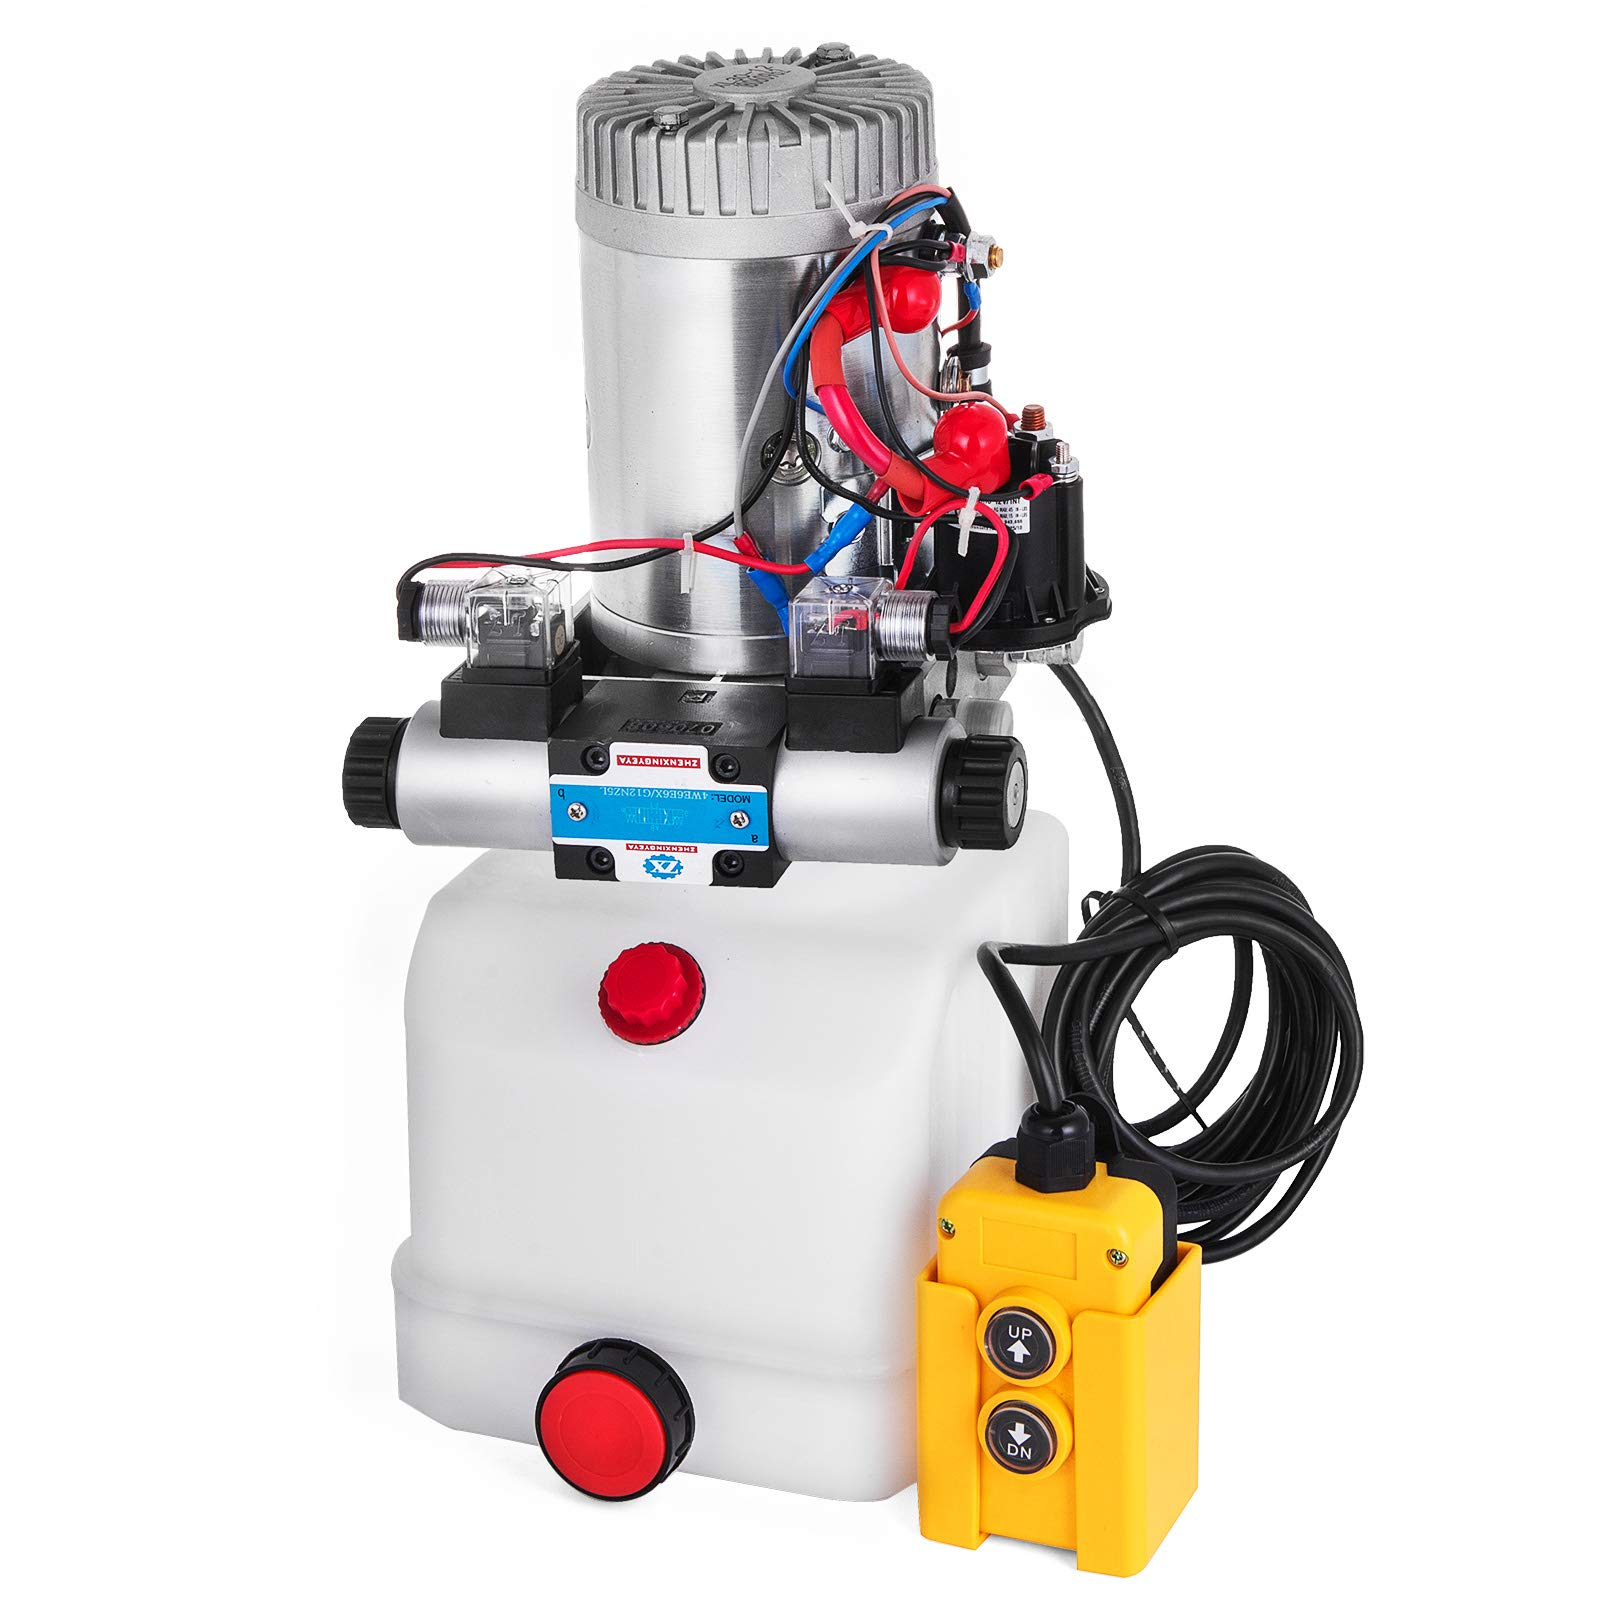 Mophorn Double Acting Single Solenoid Hydraulic Power Pack 12V DC with 4.5L Plastic Reservoir Hydraulic Power Supply Unit Uploading Lift